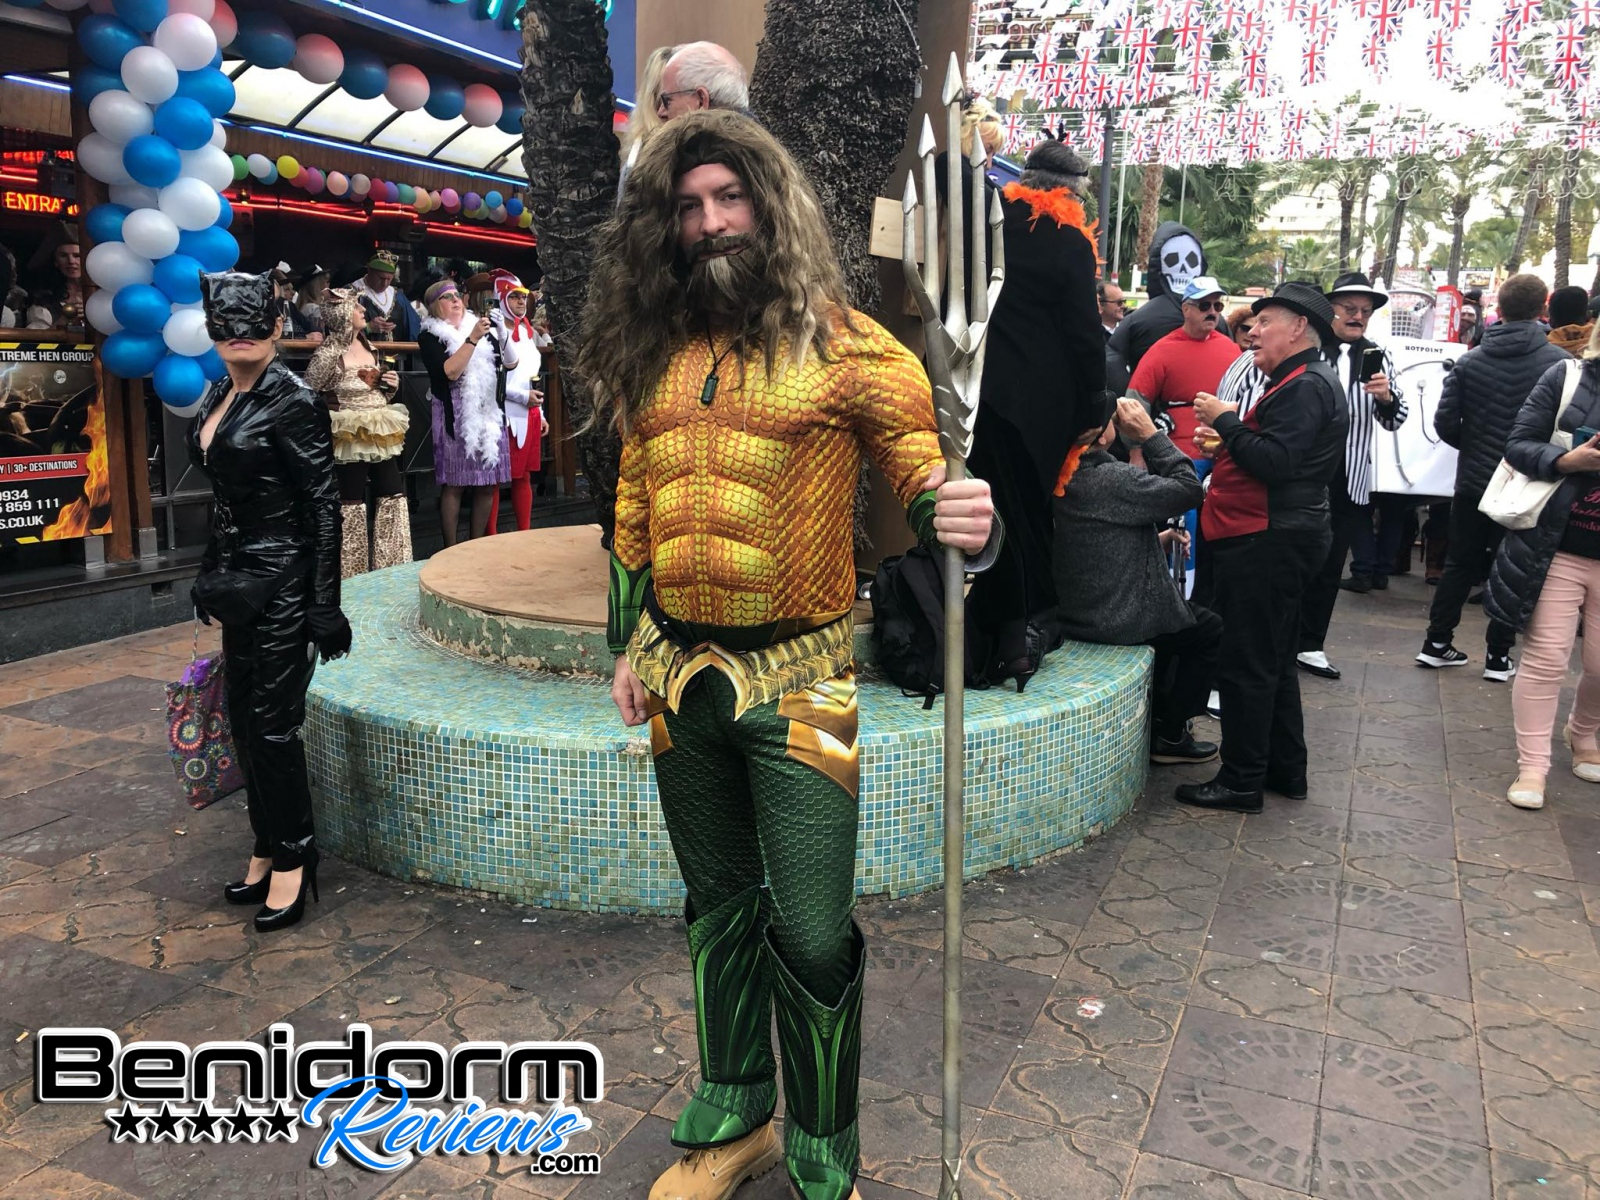 Benidorm-Fiestas-2019-Fancy-Dress-13